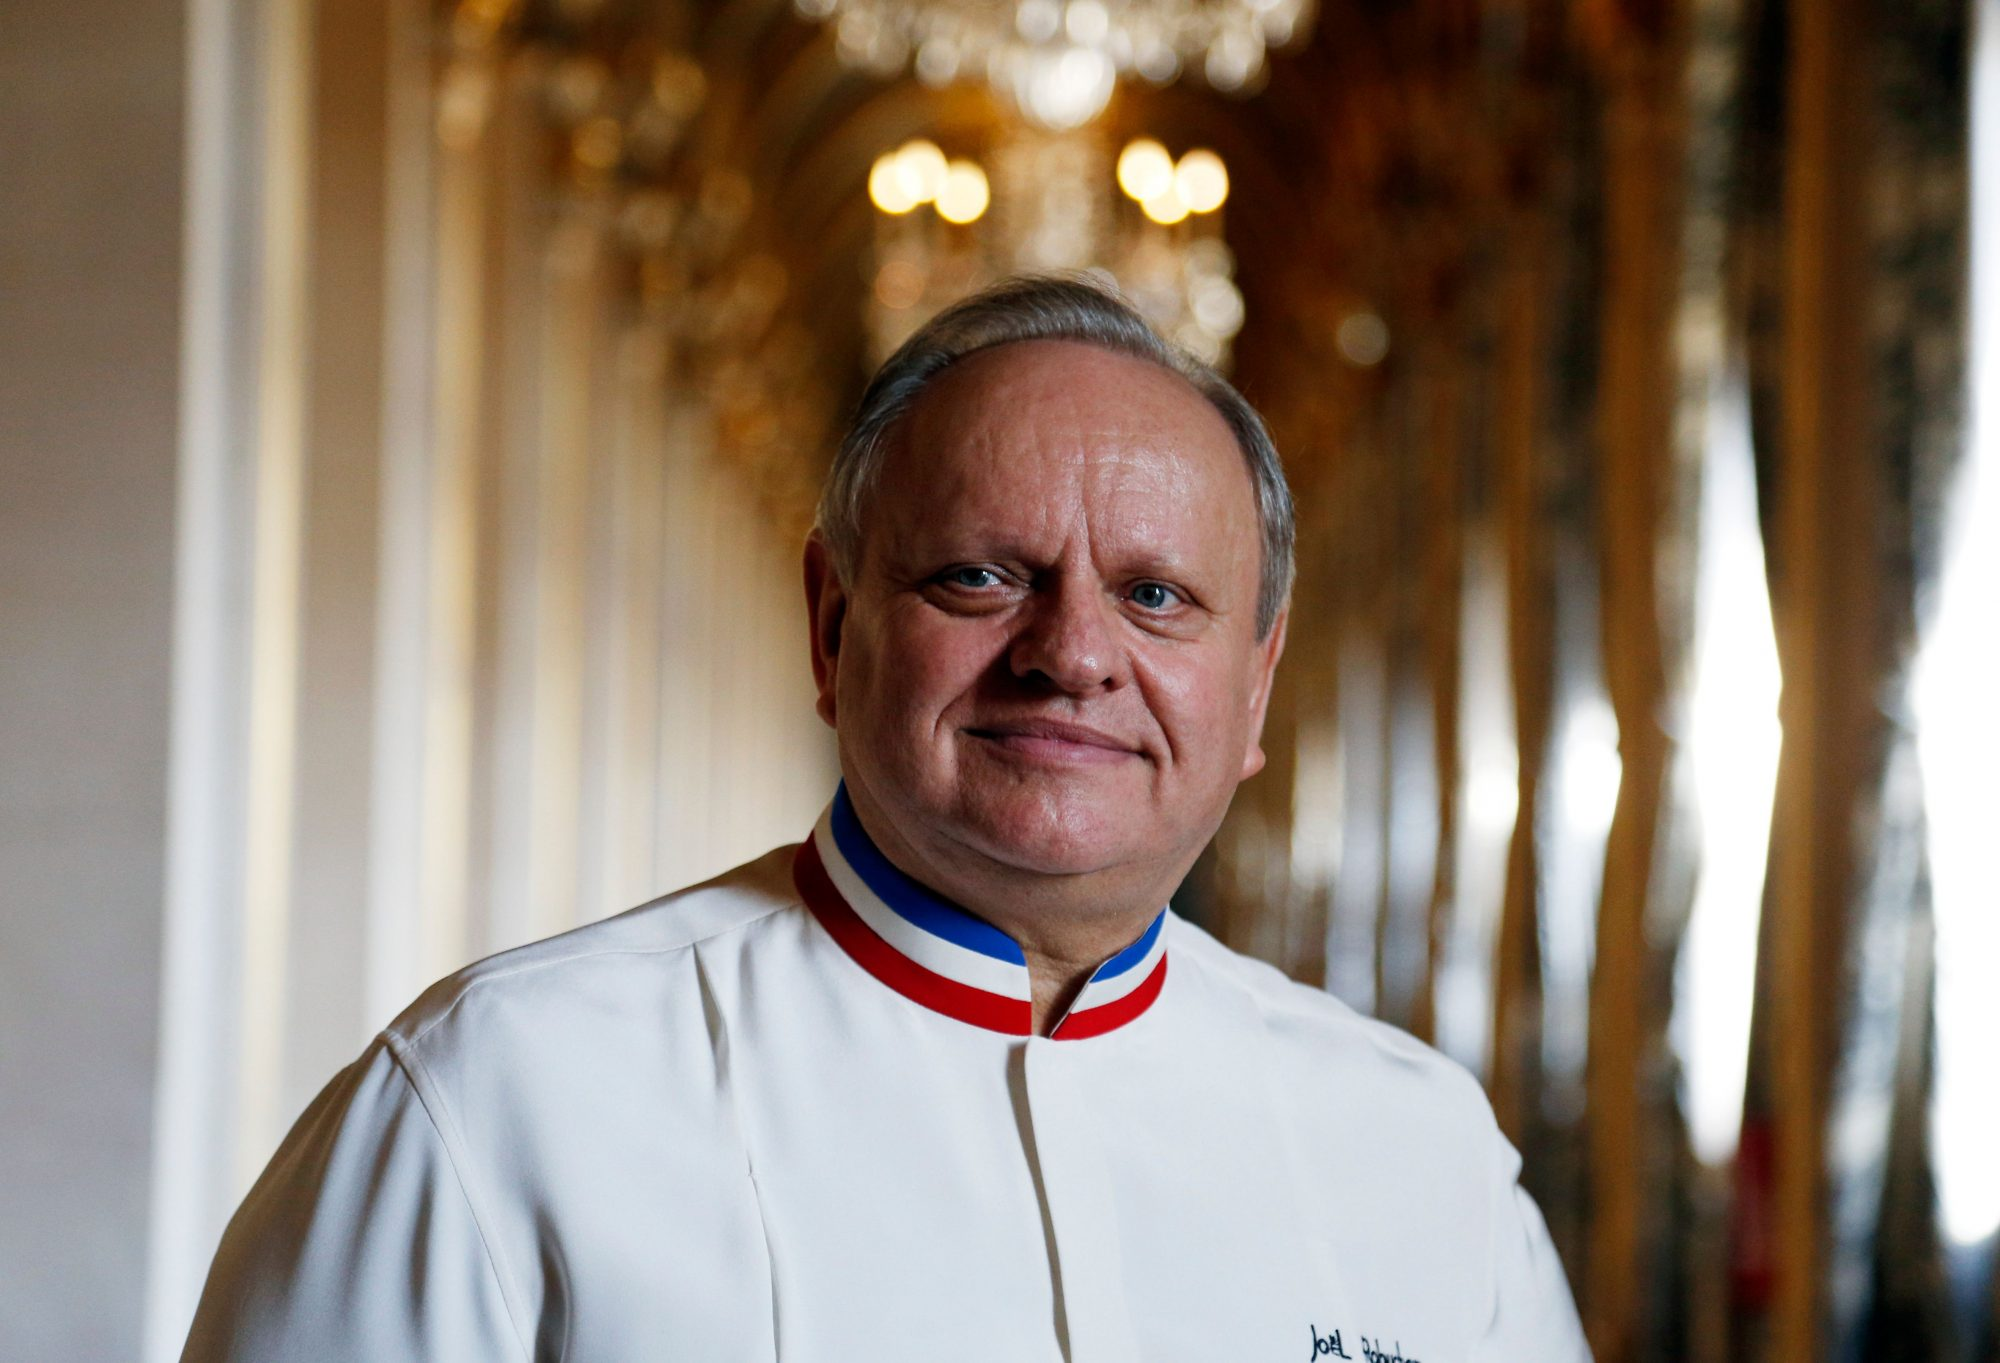 Remembering-Joel-Robuchon.jpg